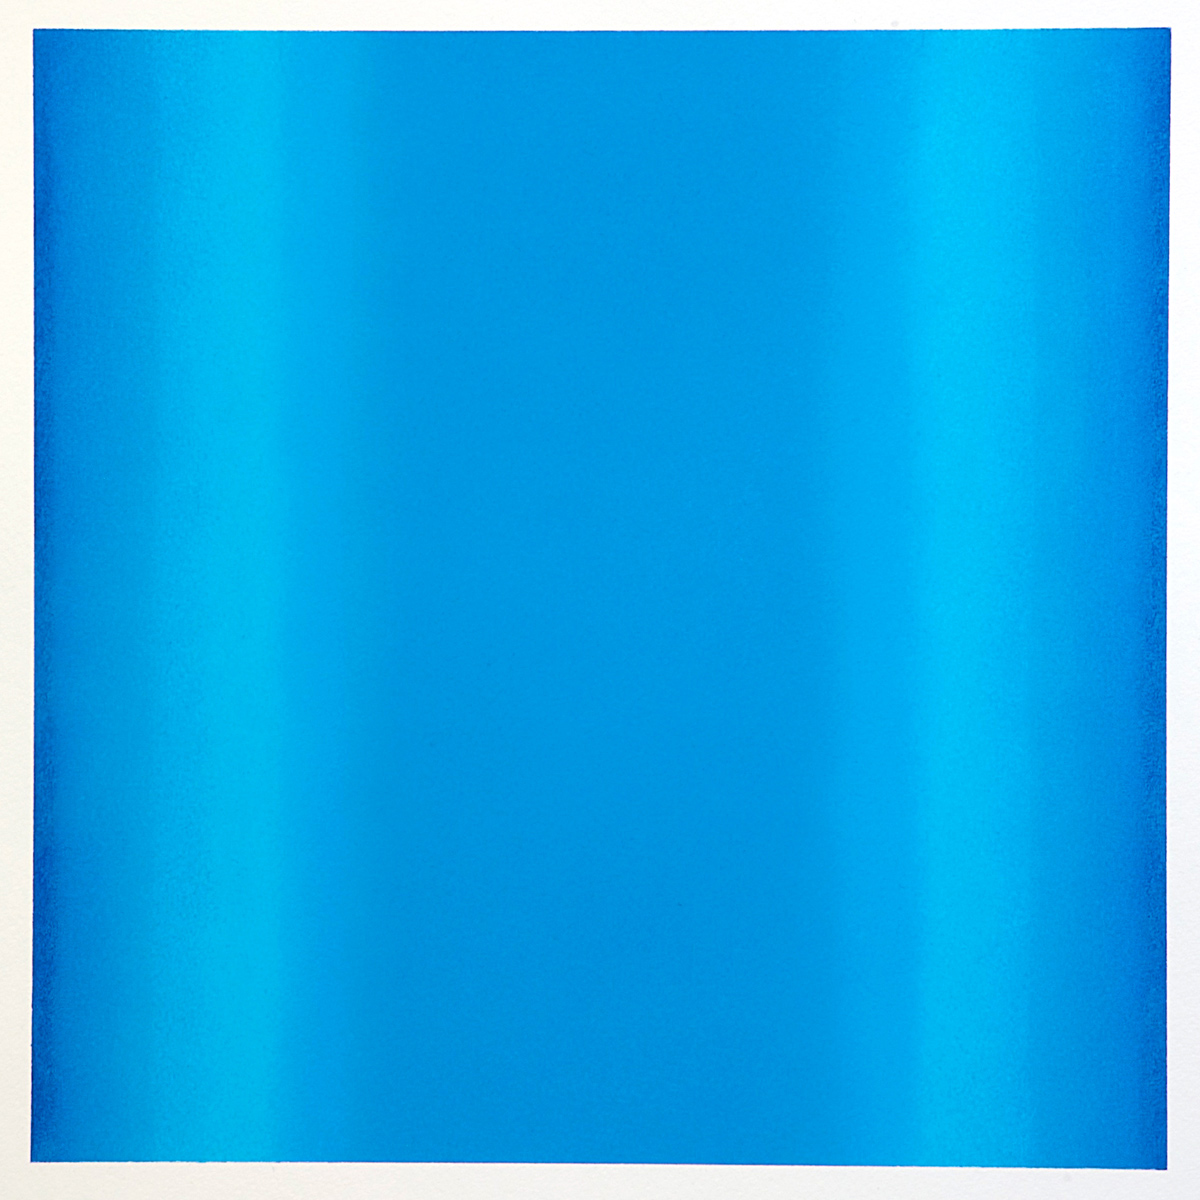 Counterpoint #33, 2012, pastel on paper, image 14 x 14 in. (36 x 36 cm.), sheet 30 x 22 in. (76 x 56 cm.)